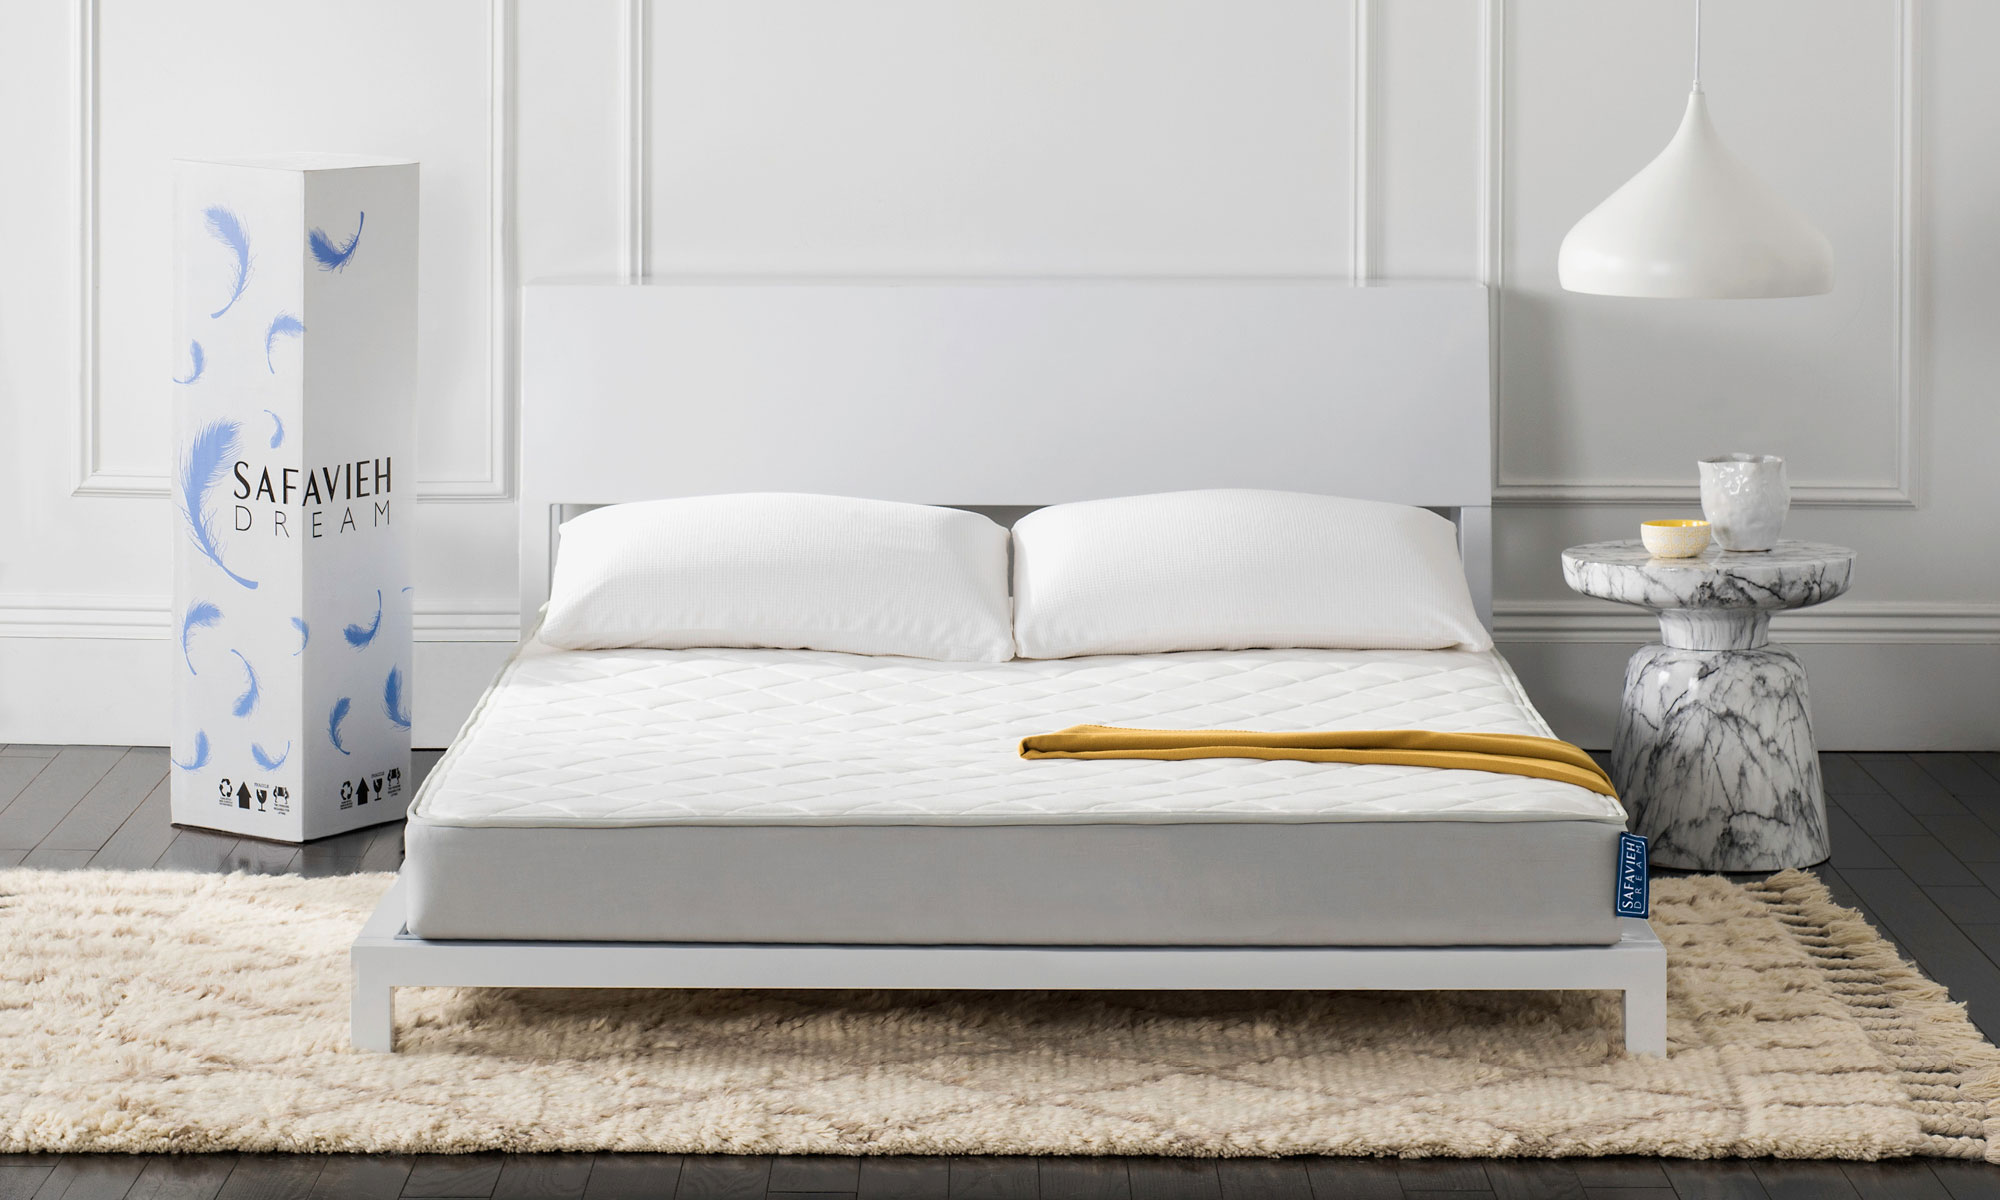 mattress in a box. Pocket-coiled, Pillow-topped And Shipped To Your Door In A Slim Upright Box\u0027s. OpenUnrollSleep#SafaviehDream Mattress Box